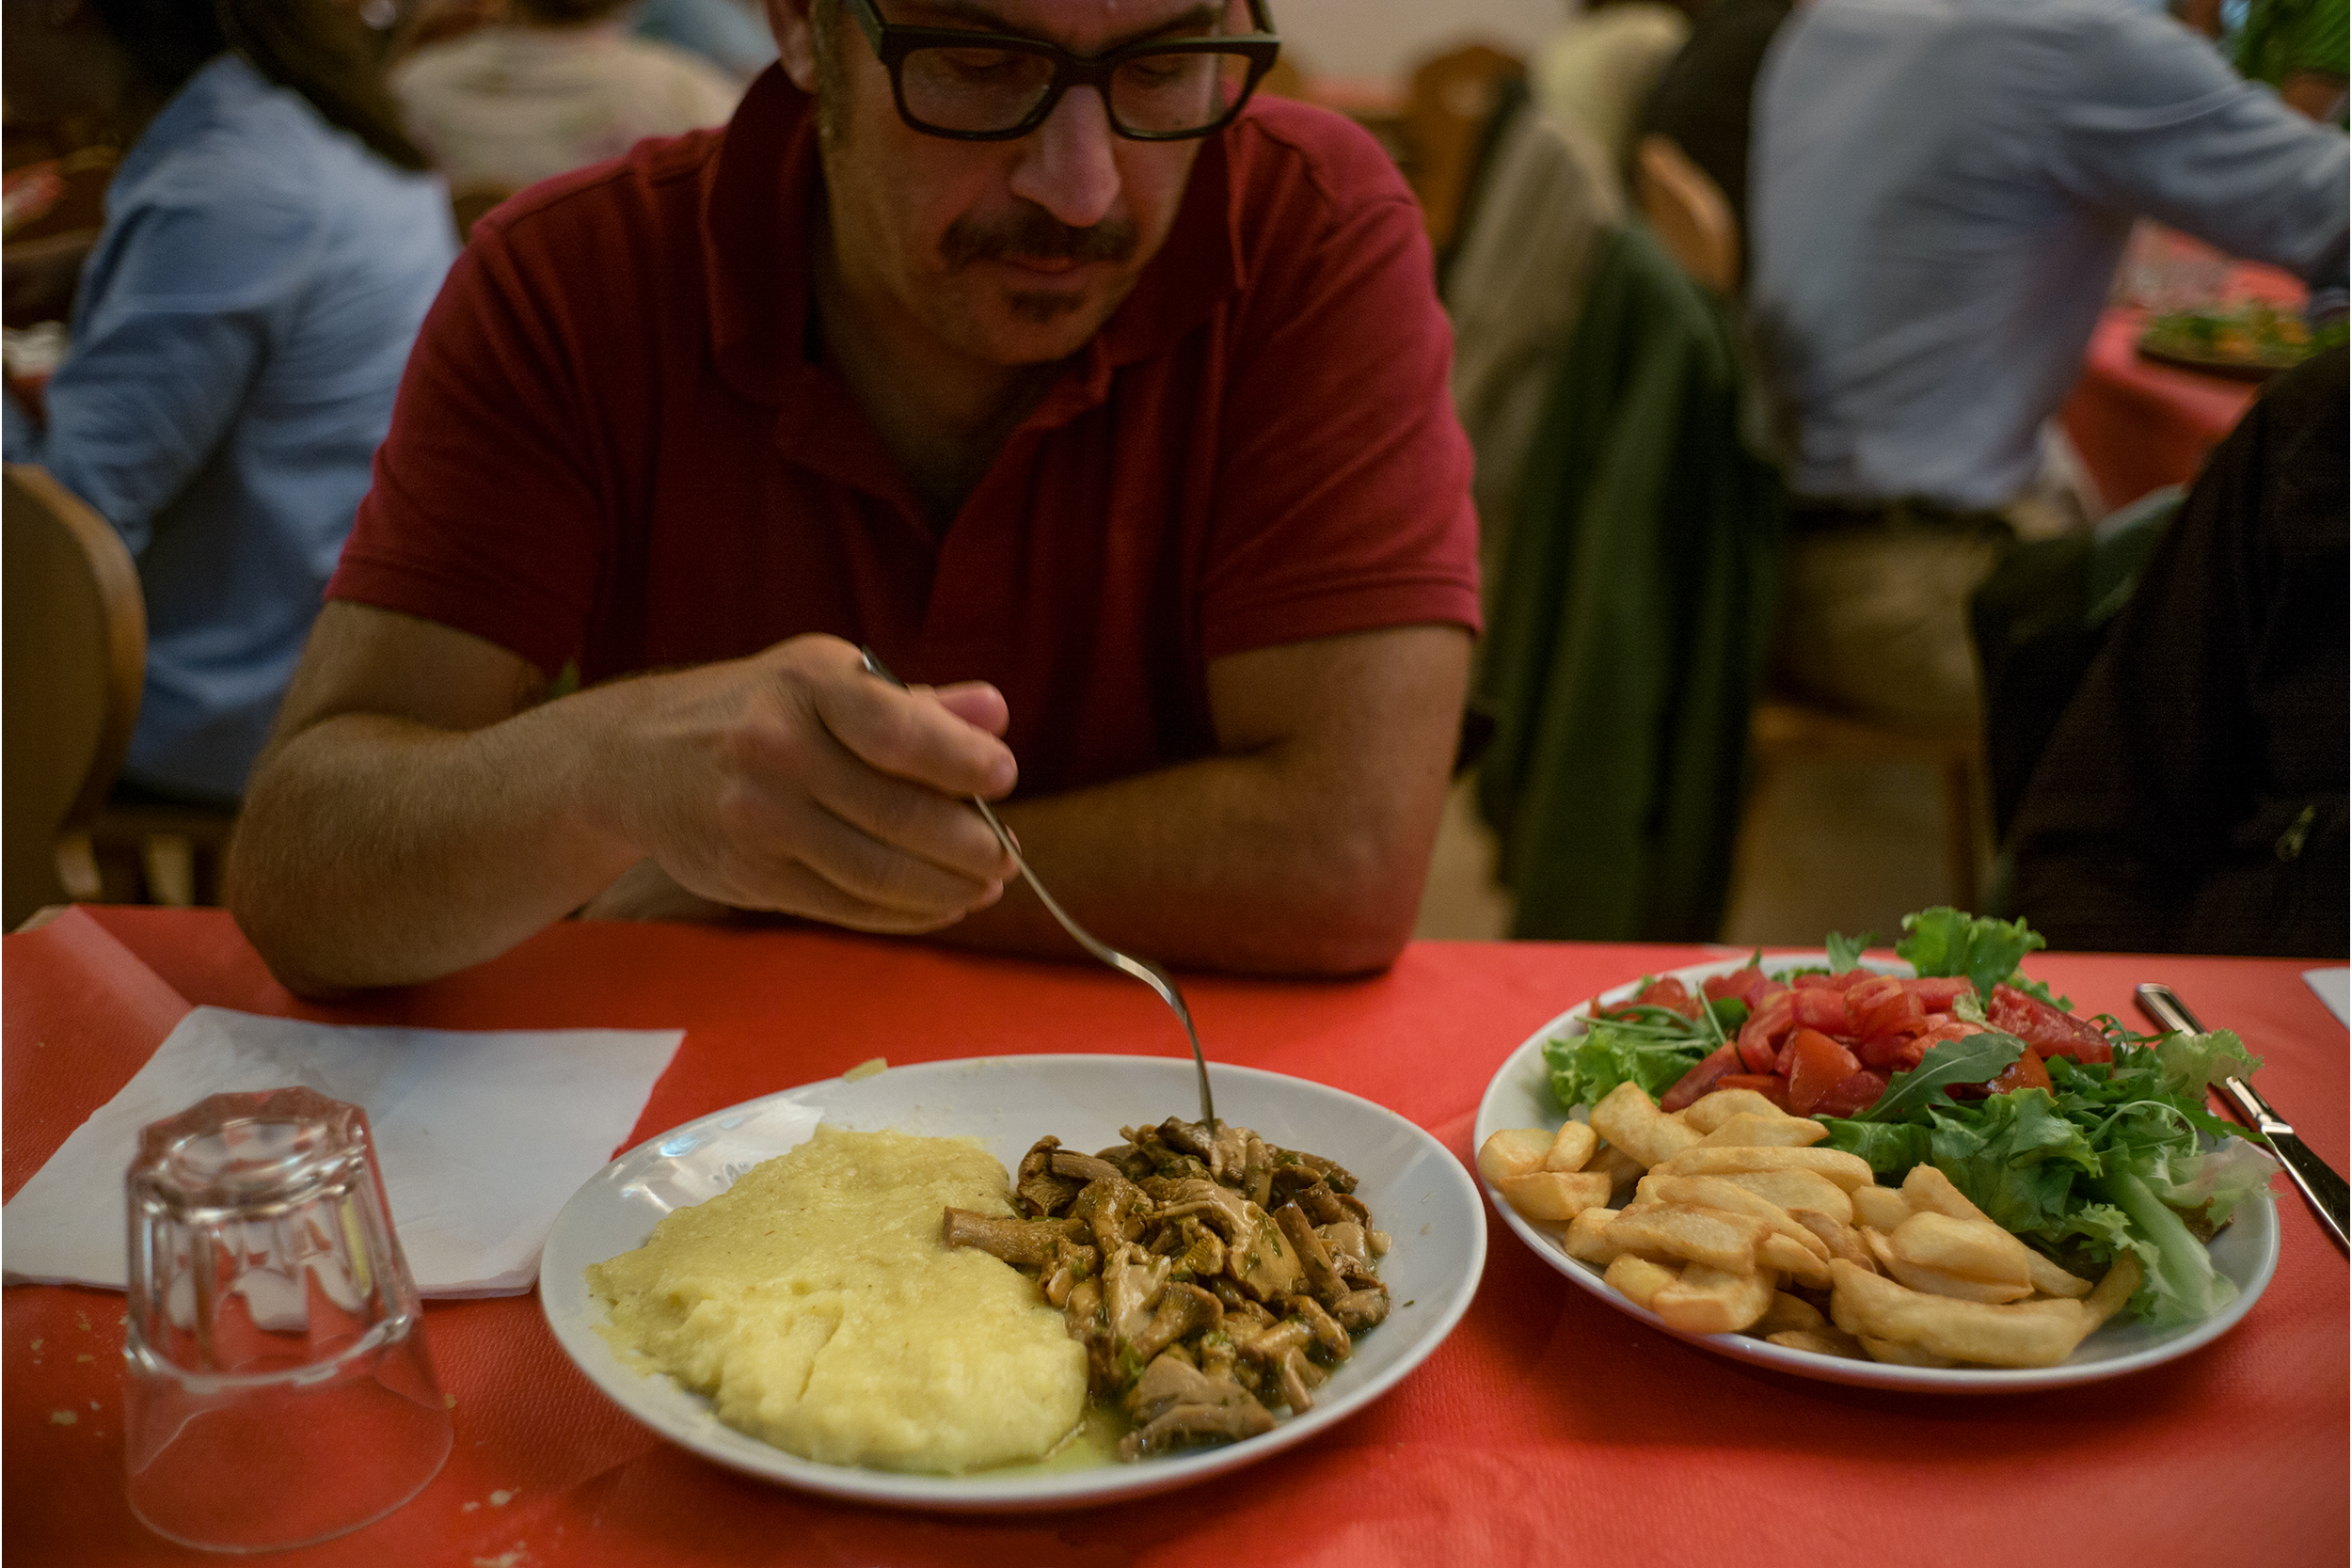 Polenta & mushrooms at Birreria da Bauce, Borca di Cadore